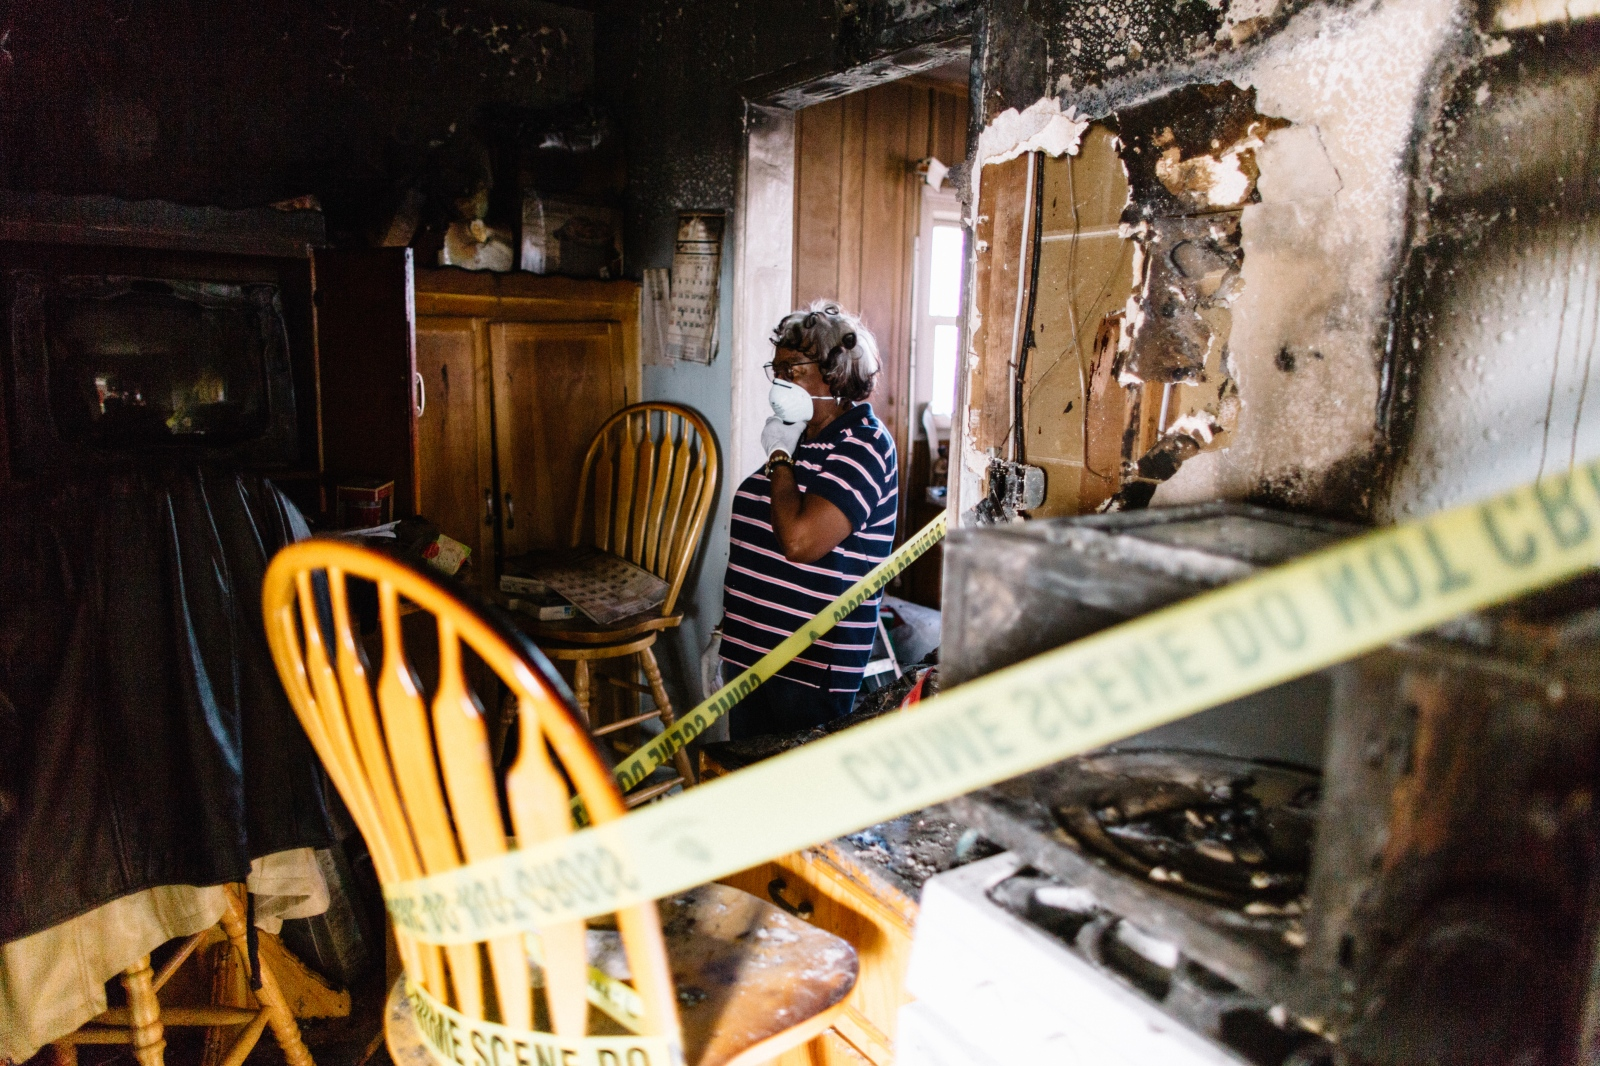 """Dorothy Mulkey"" - Orange County, CA, 2014 Dorothy Mulkey fought for fair housing in Santa Ana in the civil rights era; now she's homeless.  On December 14, 2014, Dorothy Mulkey's home caught fire. The damage made her home uninhabitable. Eli Reyna, a local videographer, met Mulkey while working at the OC Human Relations Commission and began a house fund to support Mulkey."